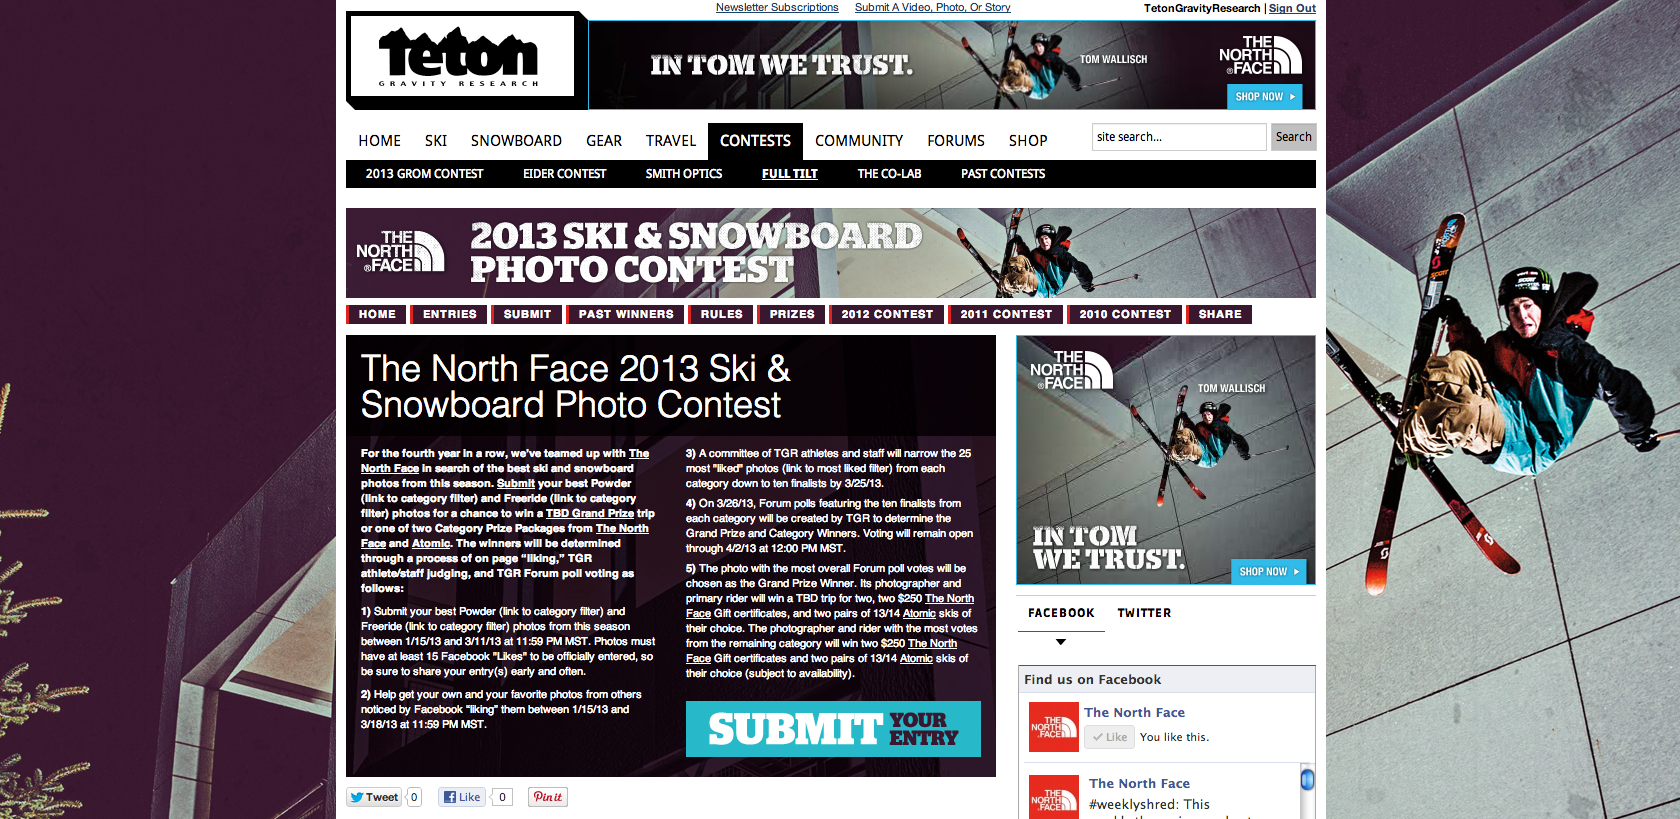 The North Face contest